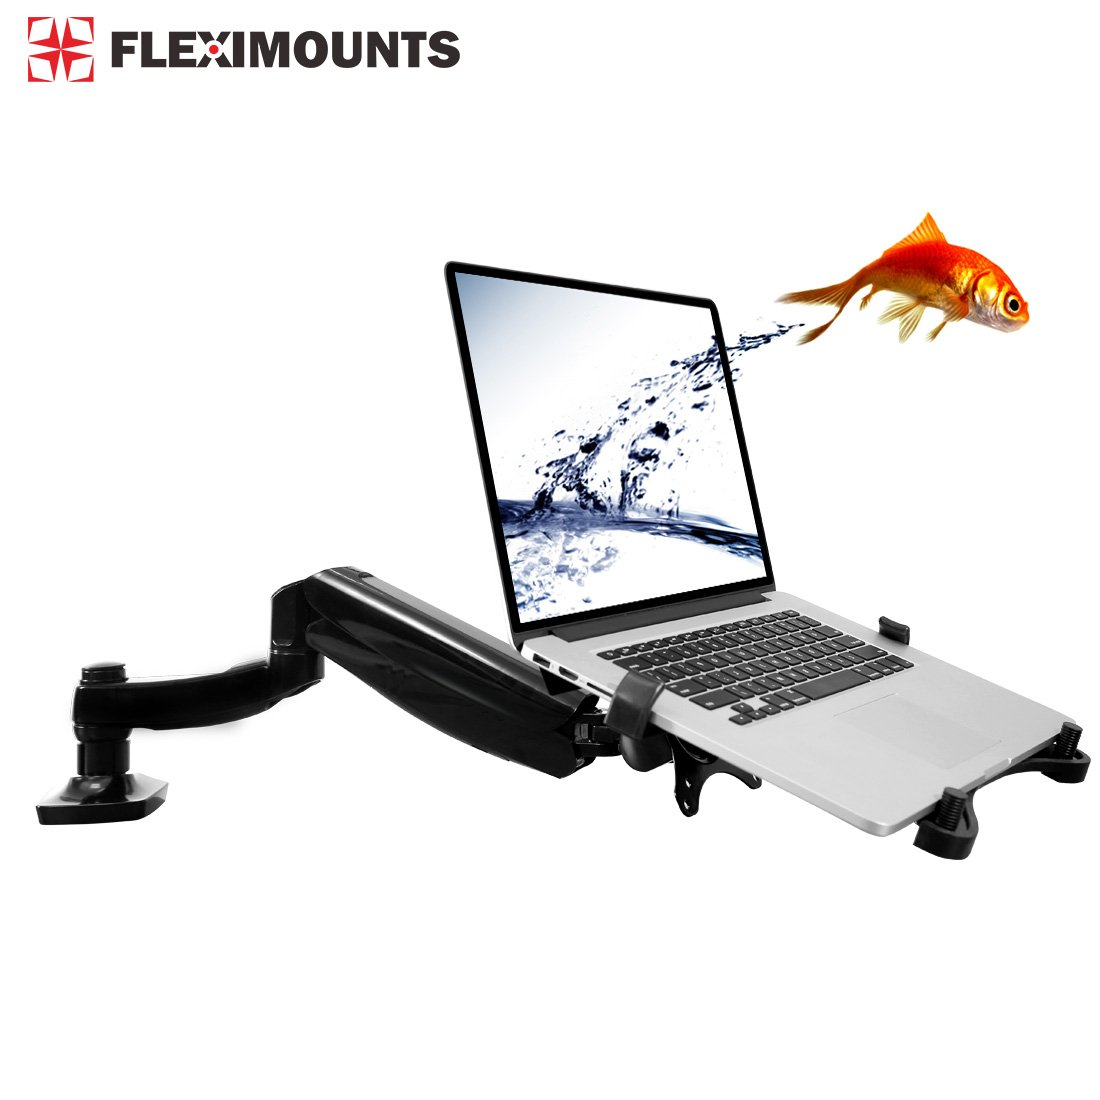 FLEXIMOUNTS notebook tray for 11-15.6 inch laptop only connect to FLEXIMOUNTS M01 M03 M04 M05 M06 M3H M6H M09 monitor mounts